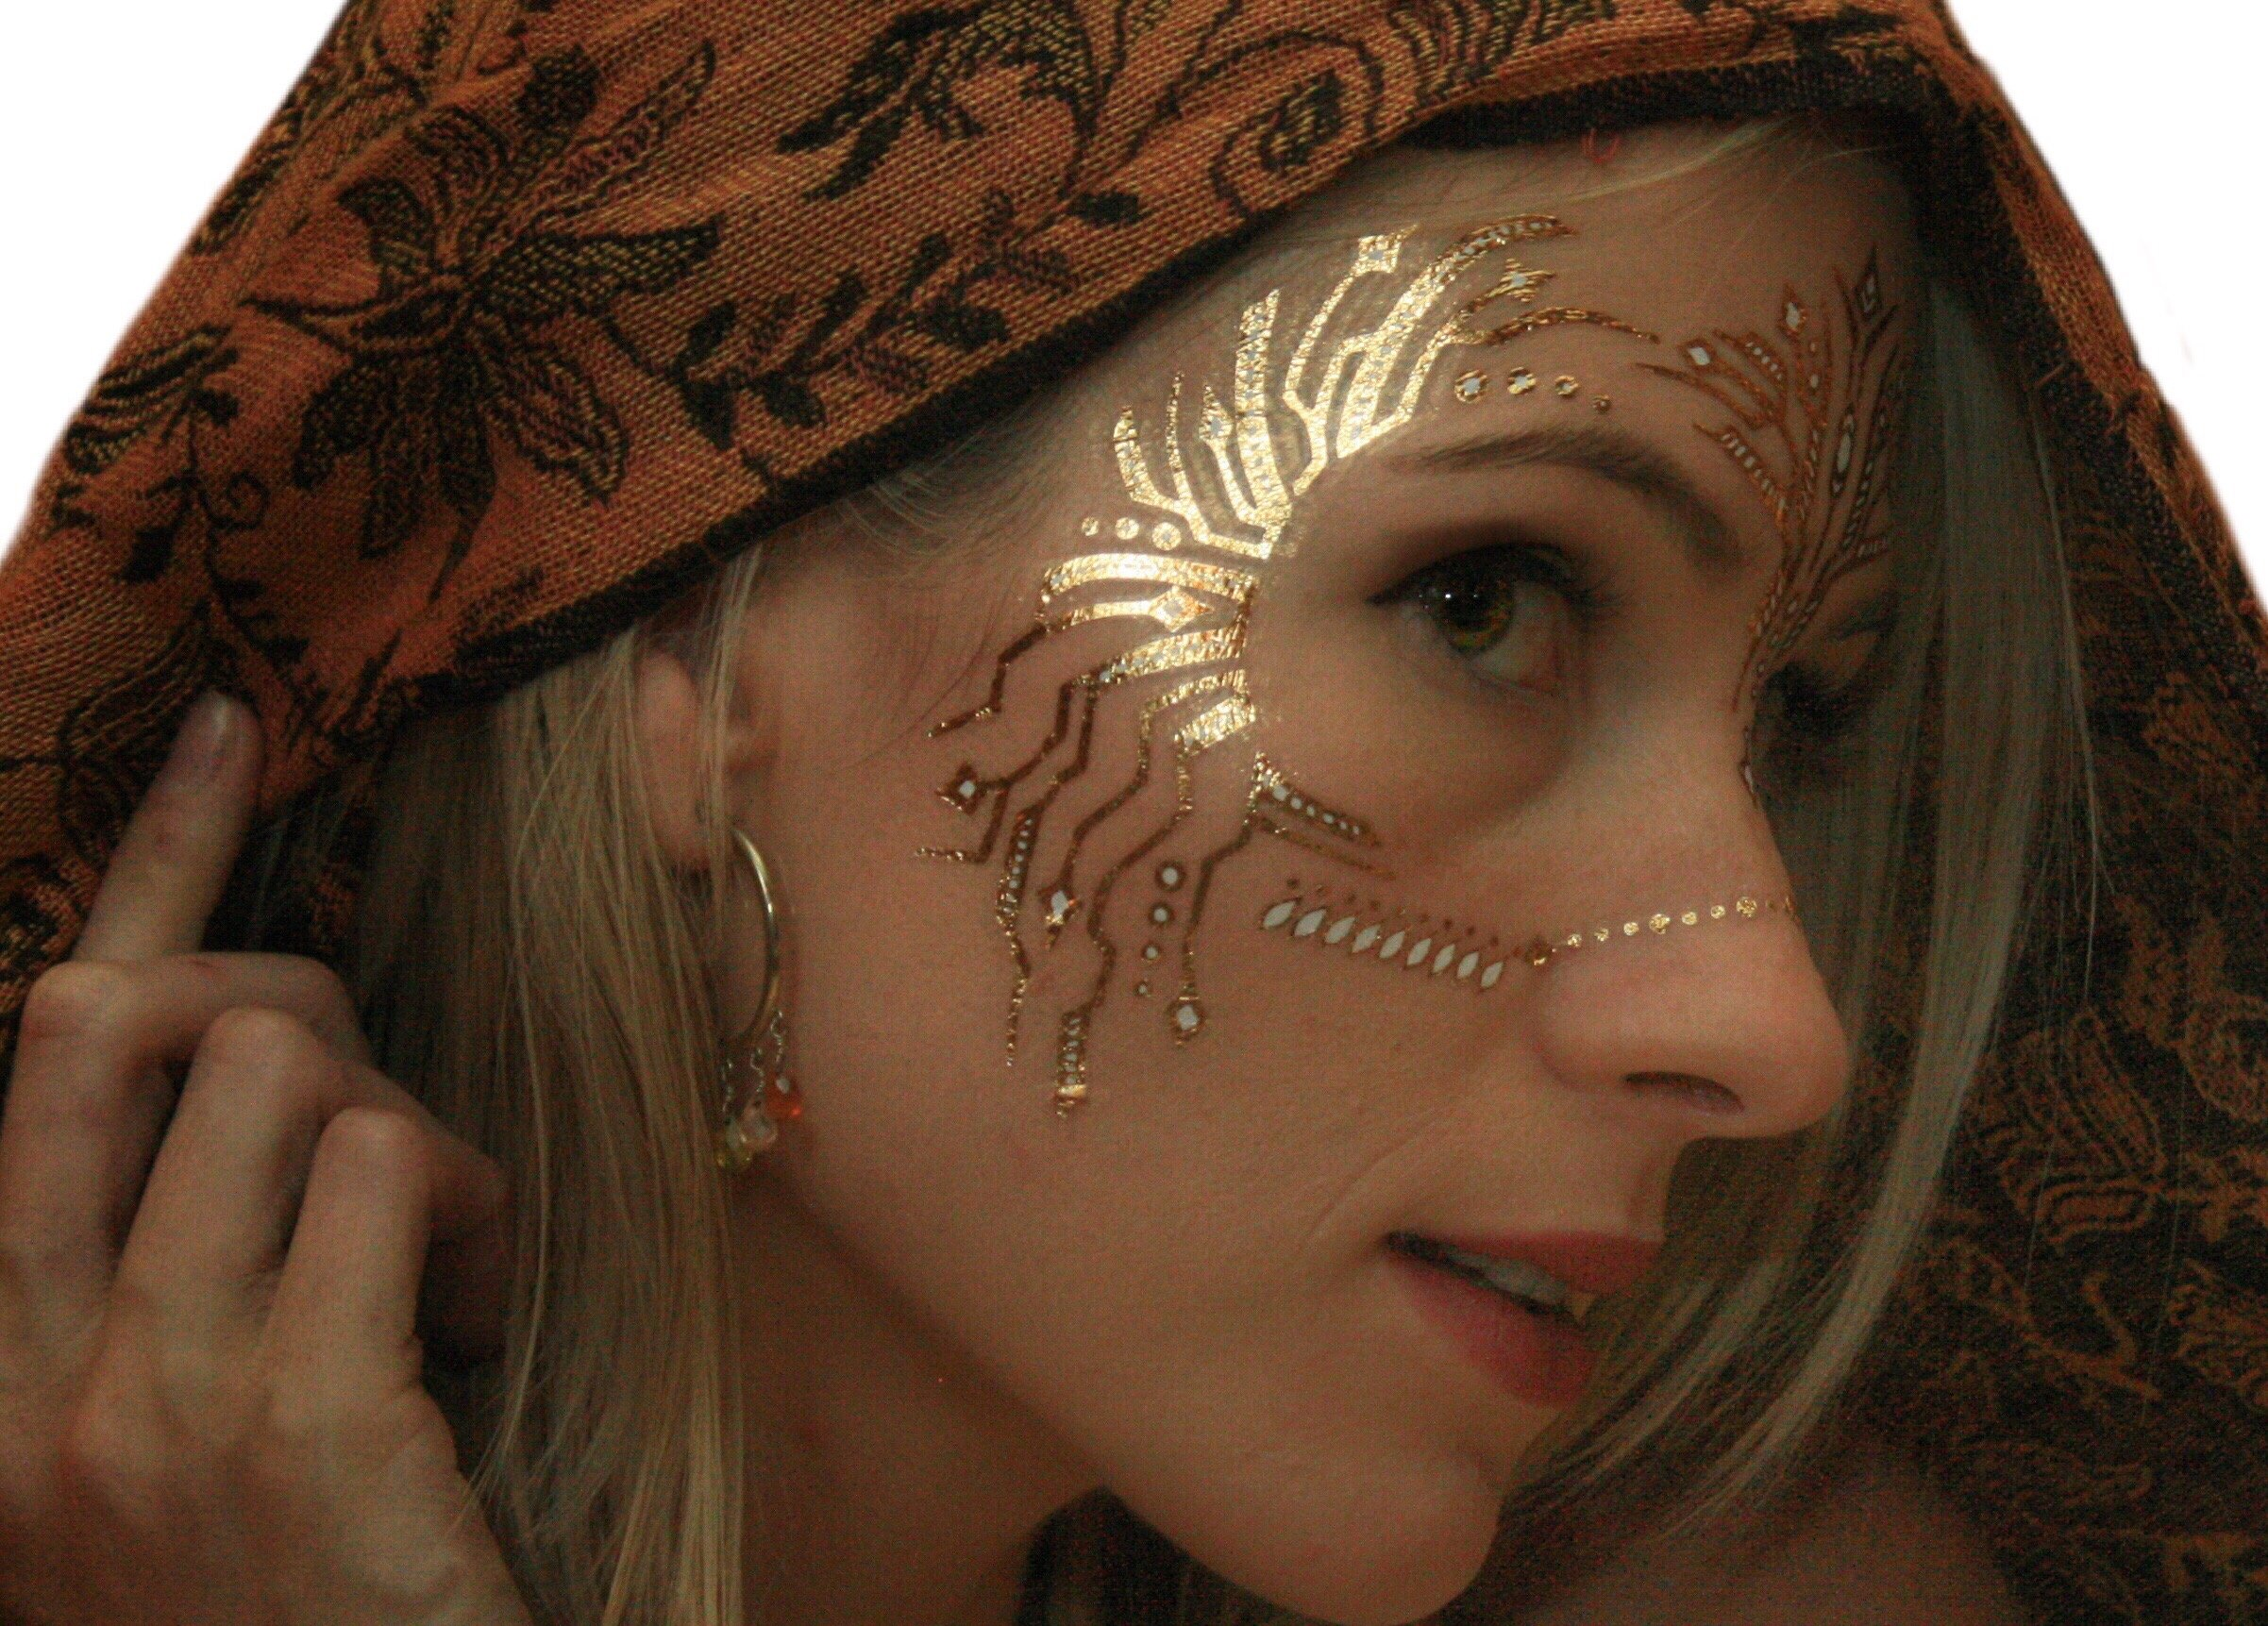 Gold Temporary Tattoos by Golden Ratio Tats, Festival Face Paint, Gold and White Flash Tattoos (CirquiTree Mask) by Golden Ratio Tats (Image #1)